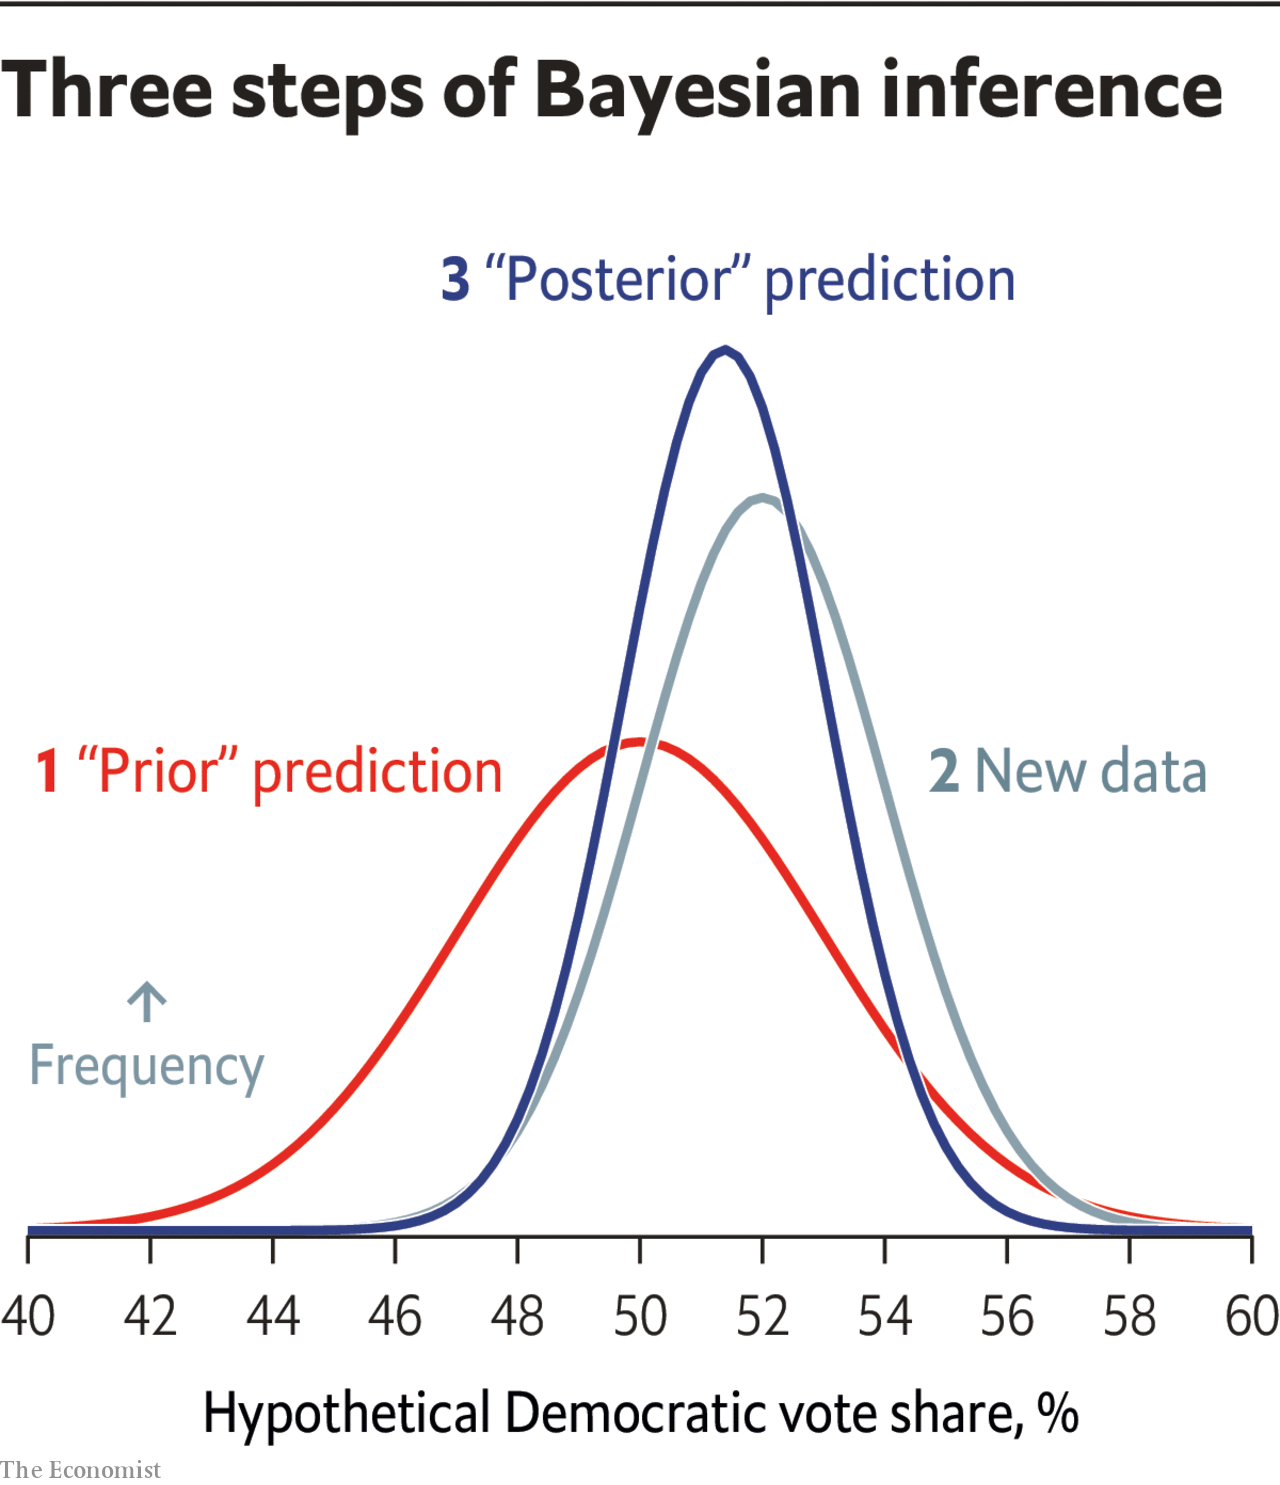 Three steps of Bayesian inference